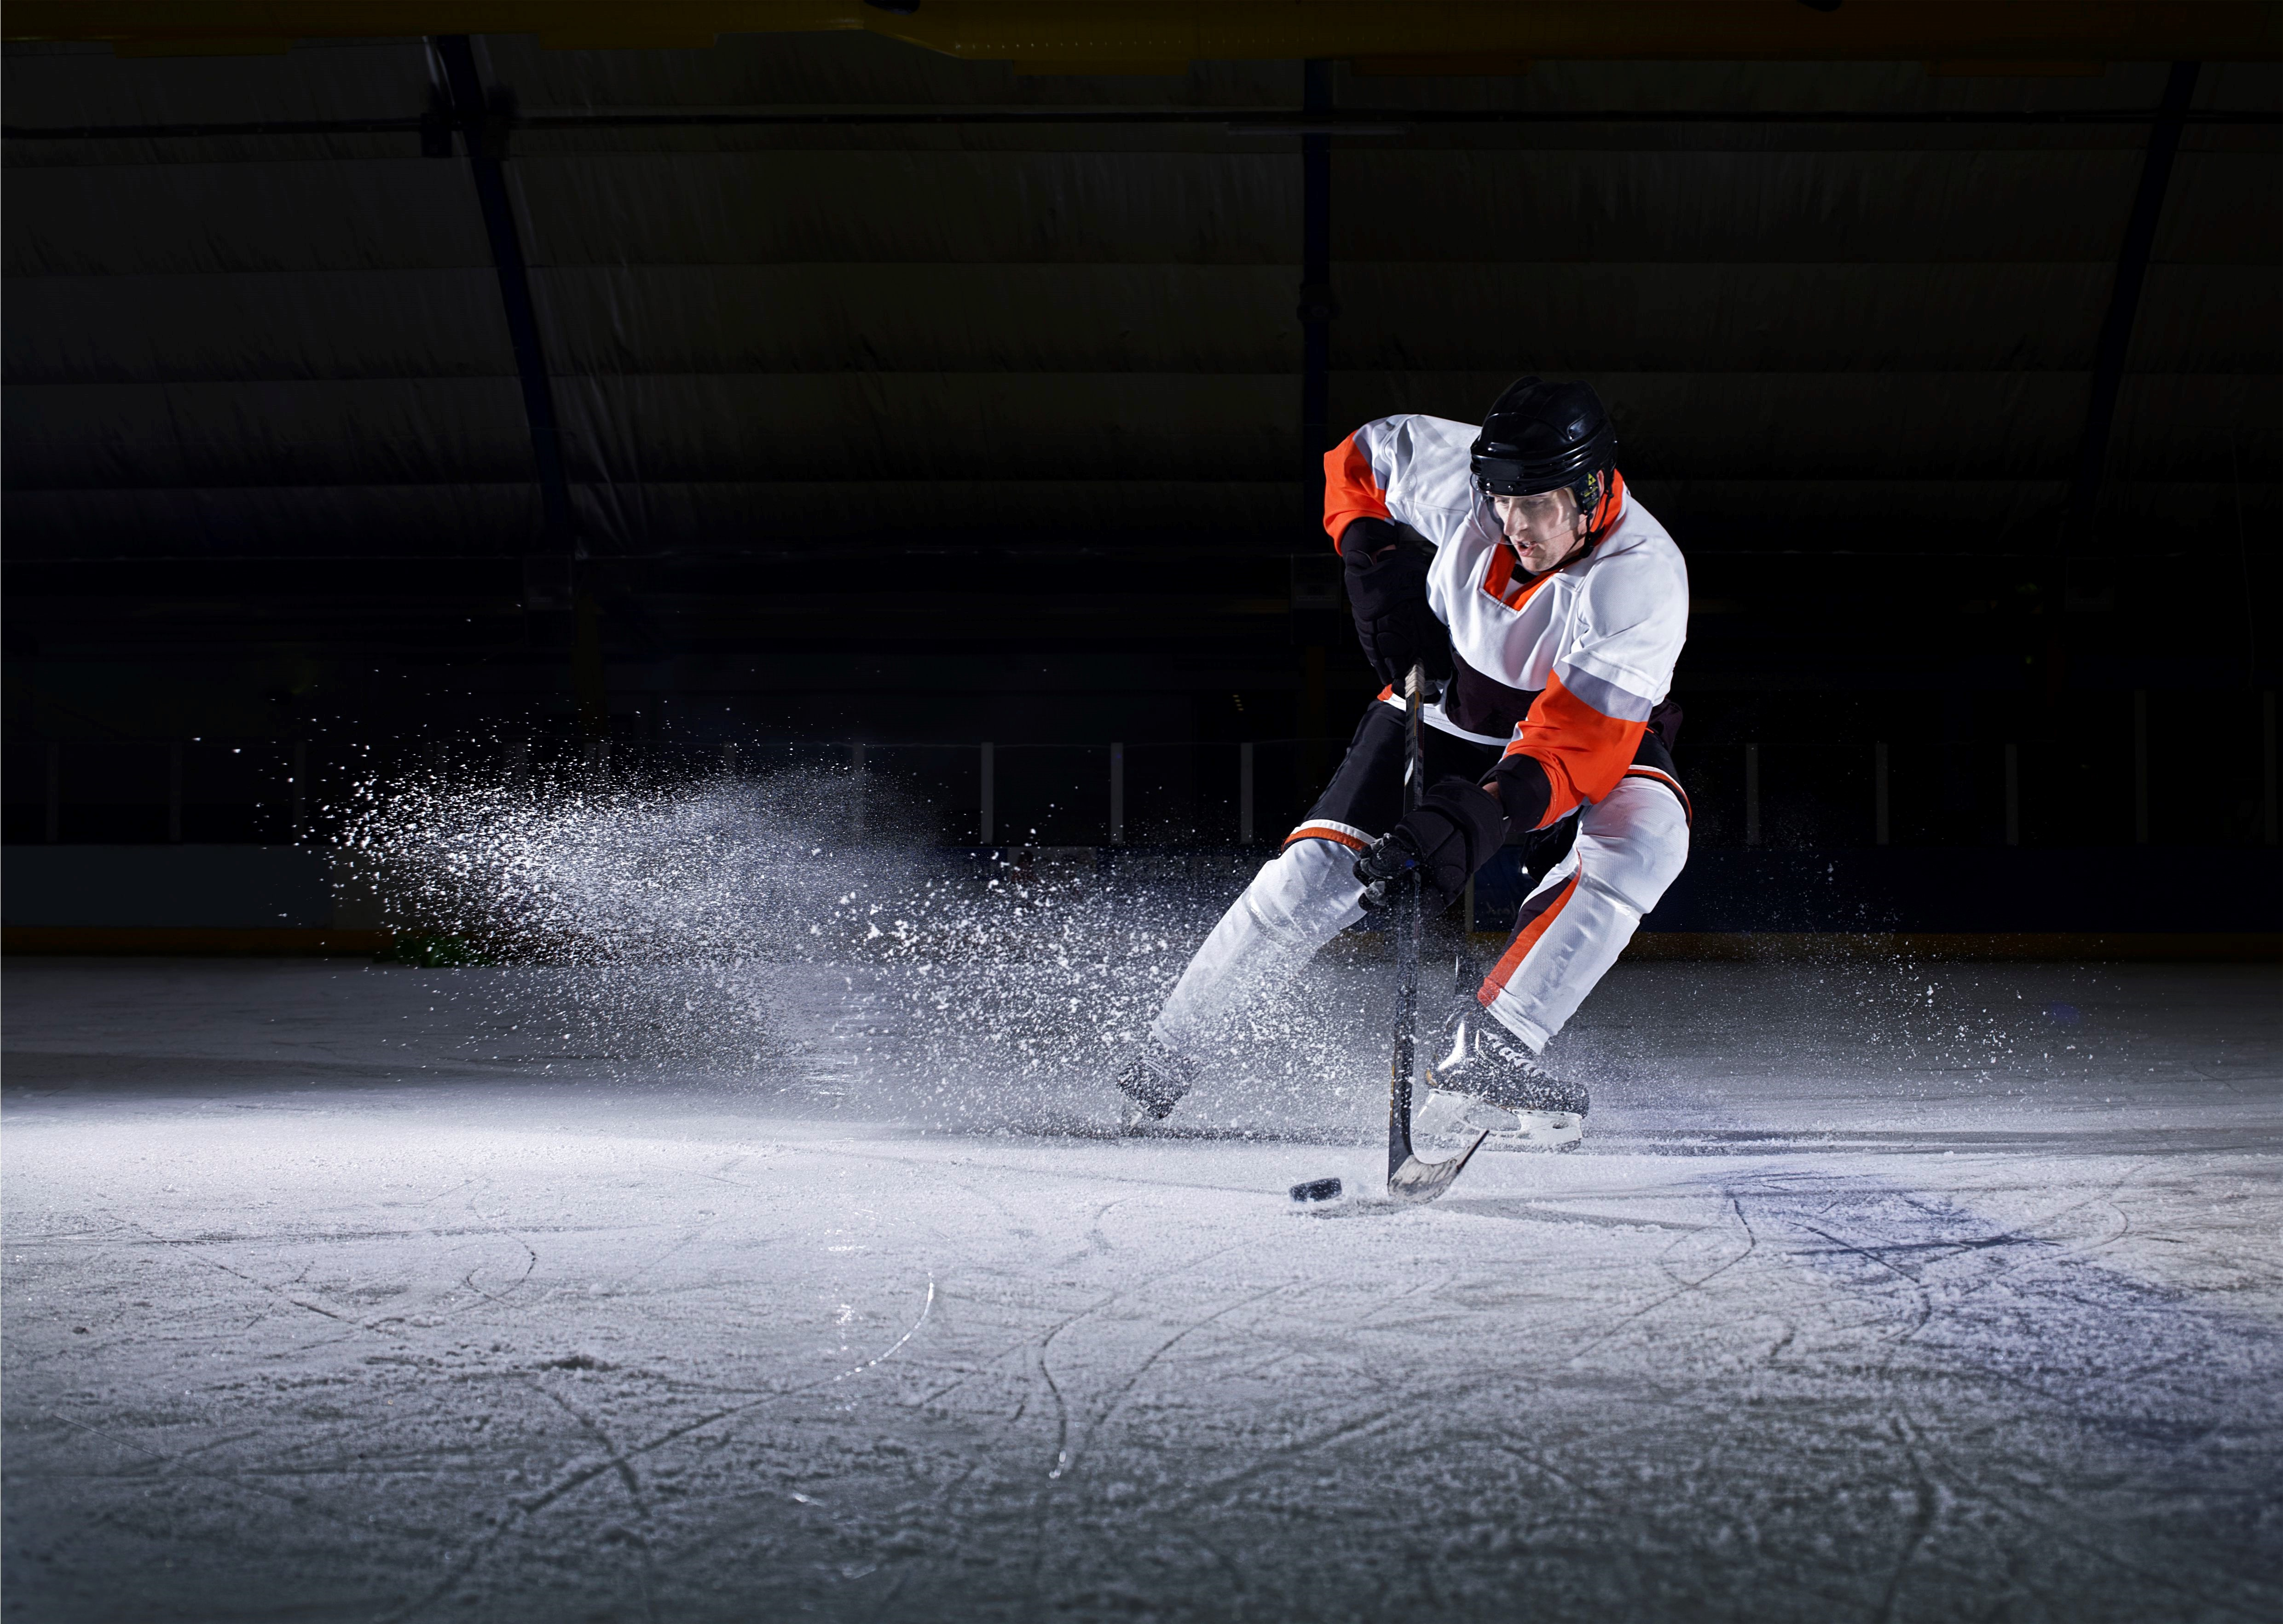 Ice Hockey Wallpaper Posted By Michelle Anderson